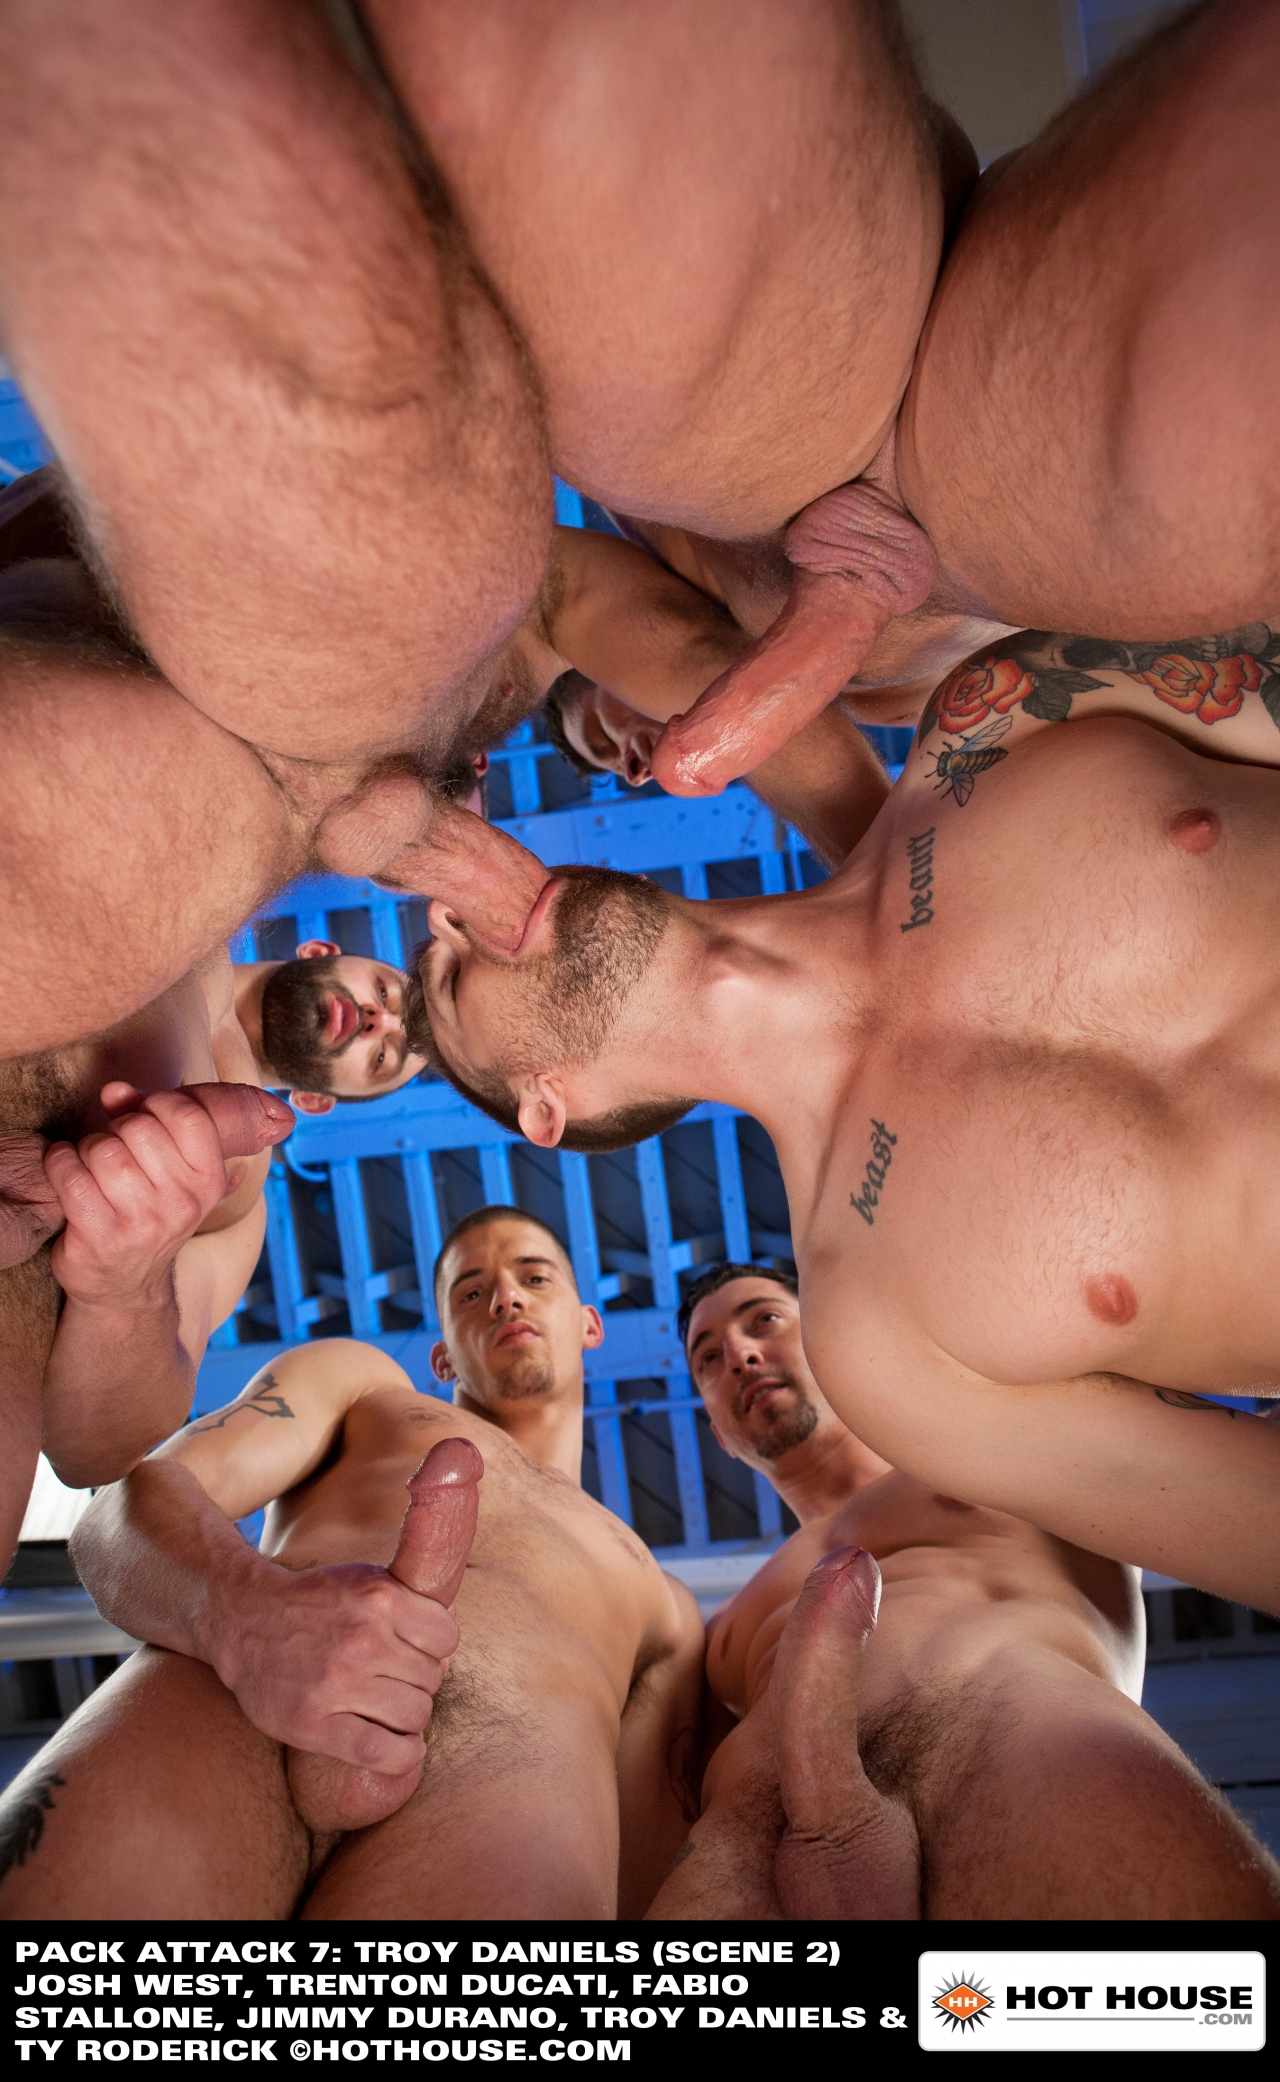 Hot House – Pack Attack 7: Troy Daniels (Scene 2)